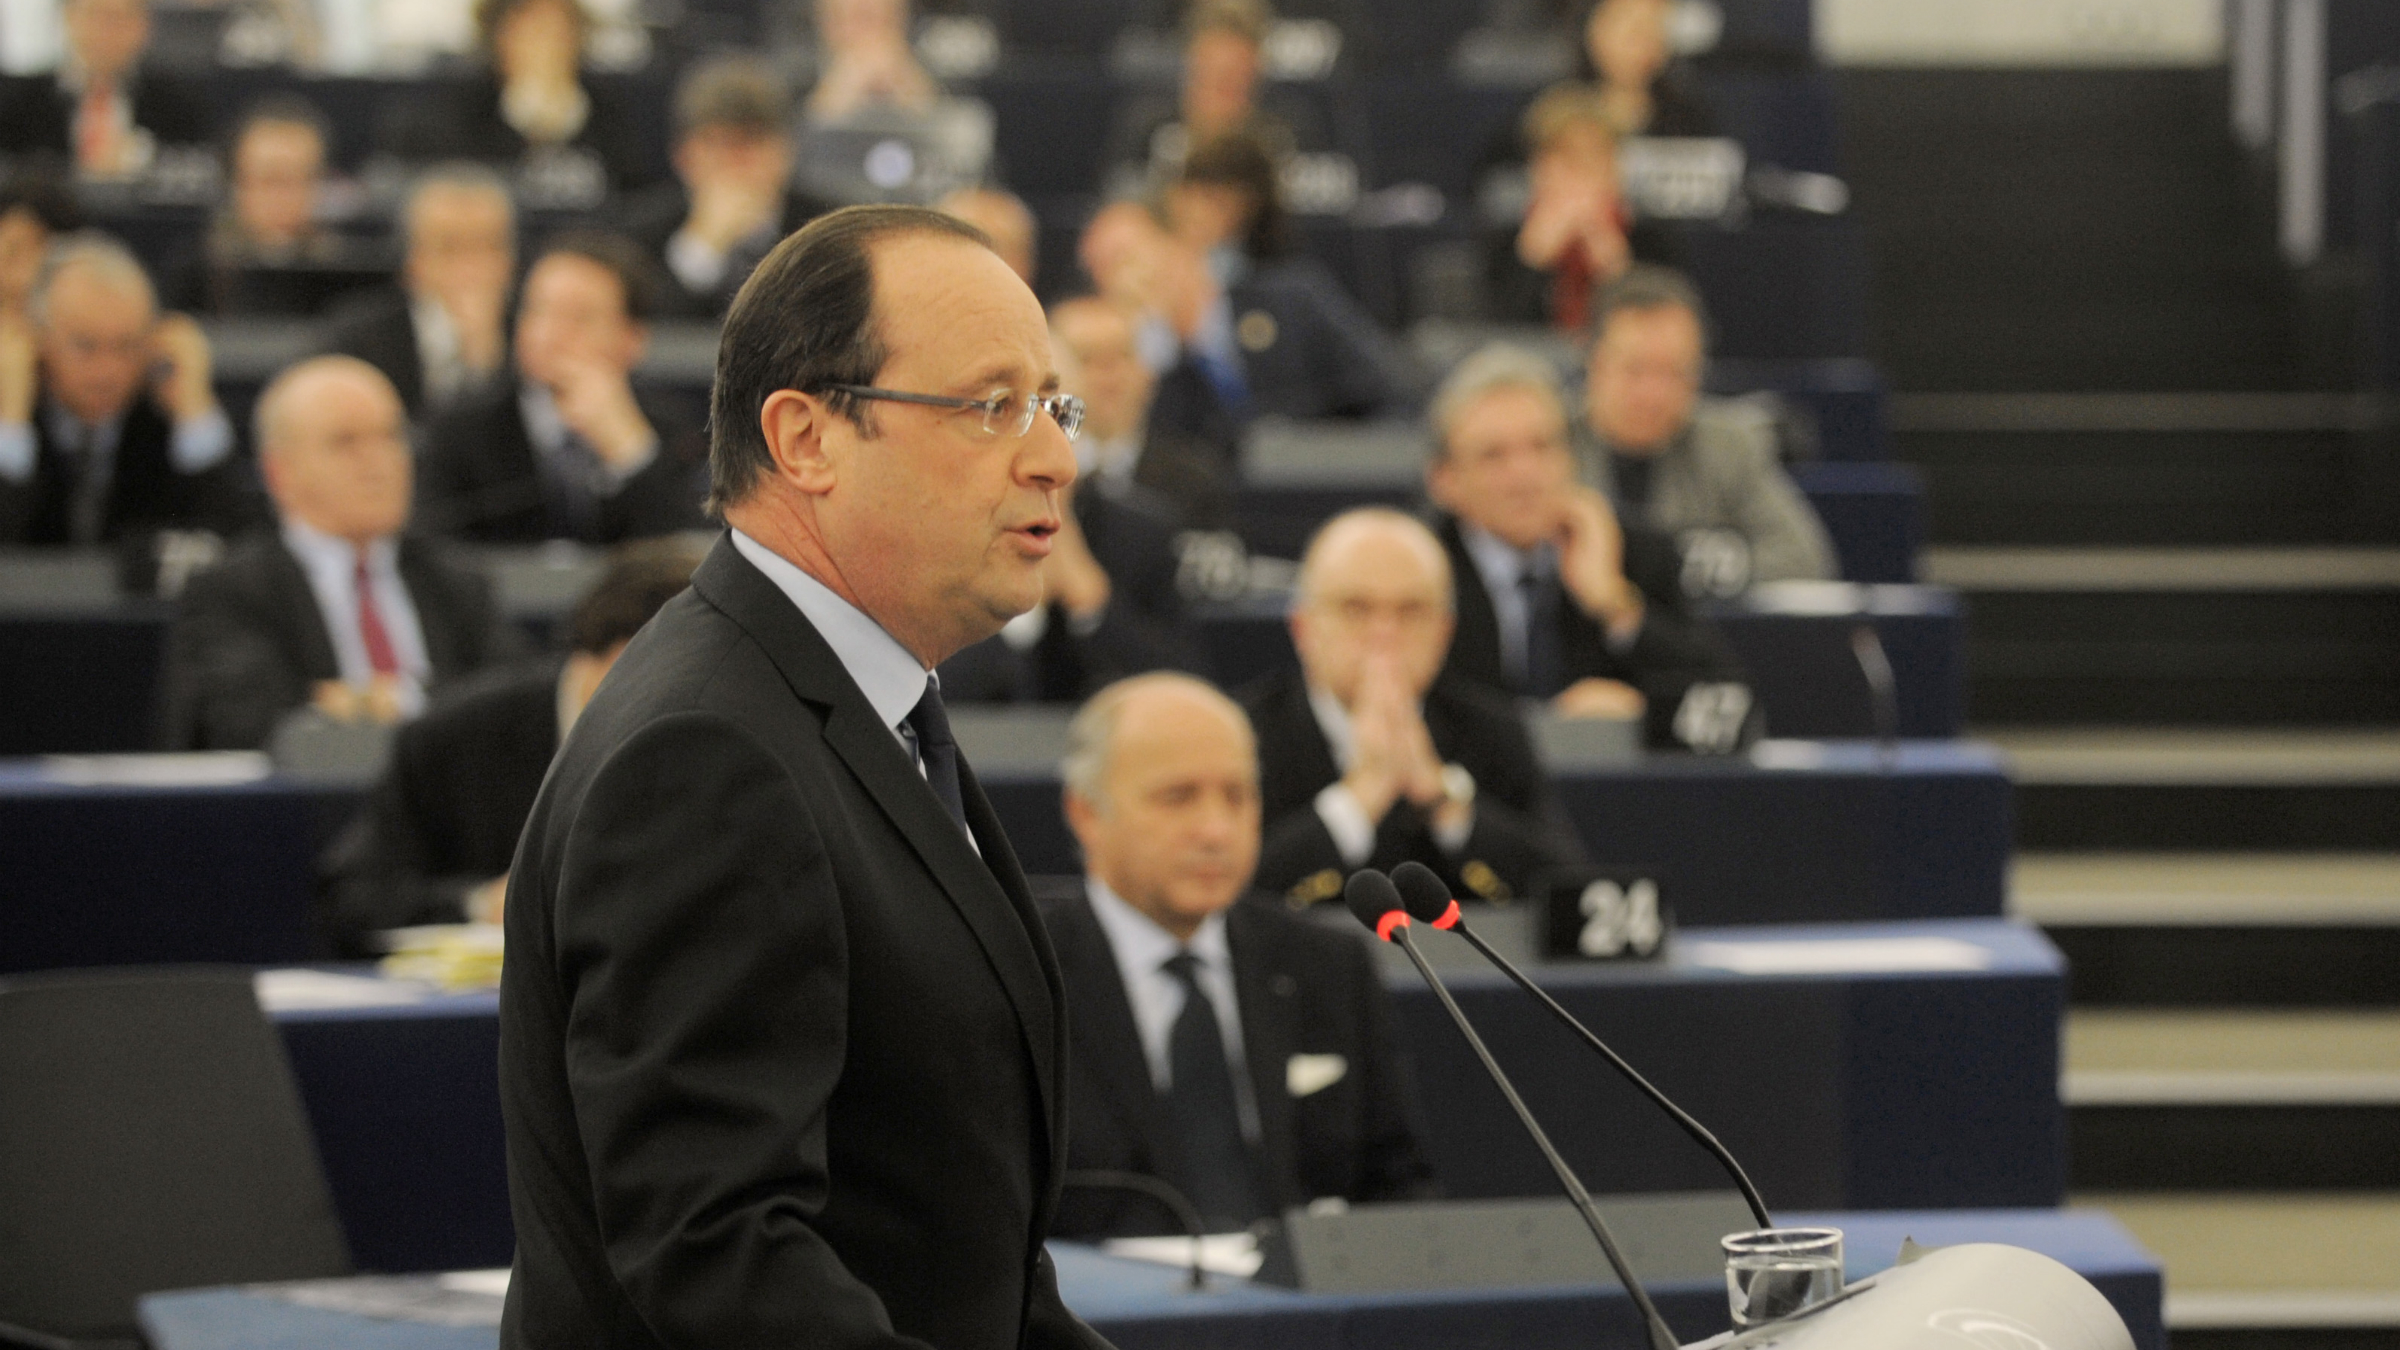 French president Francois Hollande delivers his speech at the European Parliament Tuesday, Feb. 5, 2013, in Strasbourg, eastern France. Hollande warns of a tough European Union summit later this week if countries including Britain continue to demand drastic cuts to the EU budget while refusing to make concessions themselves.